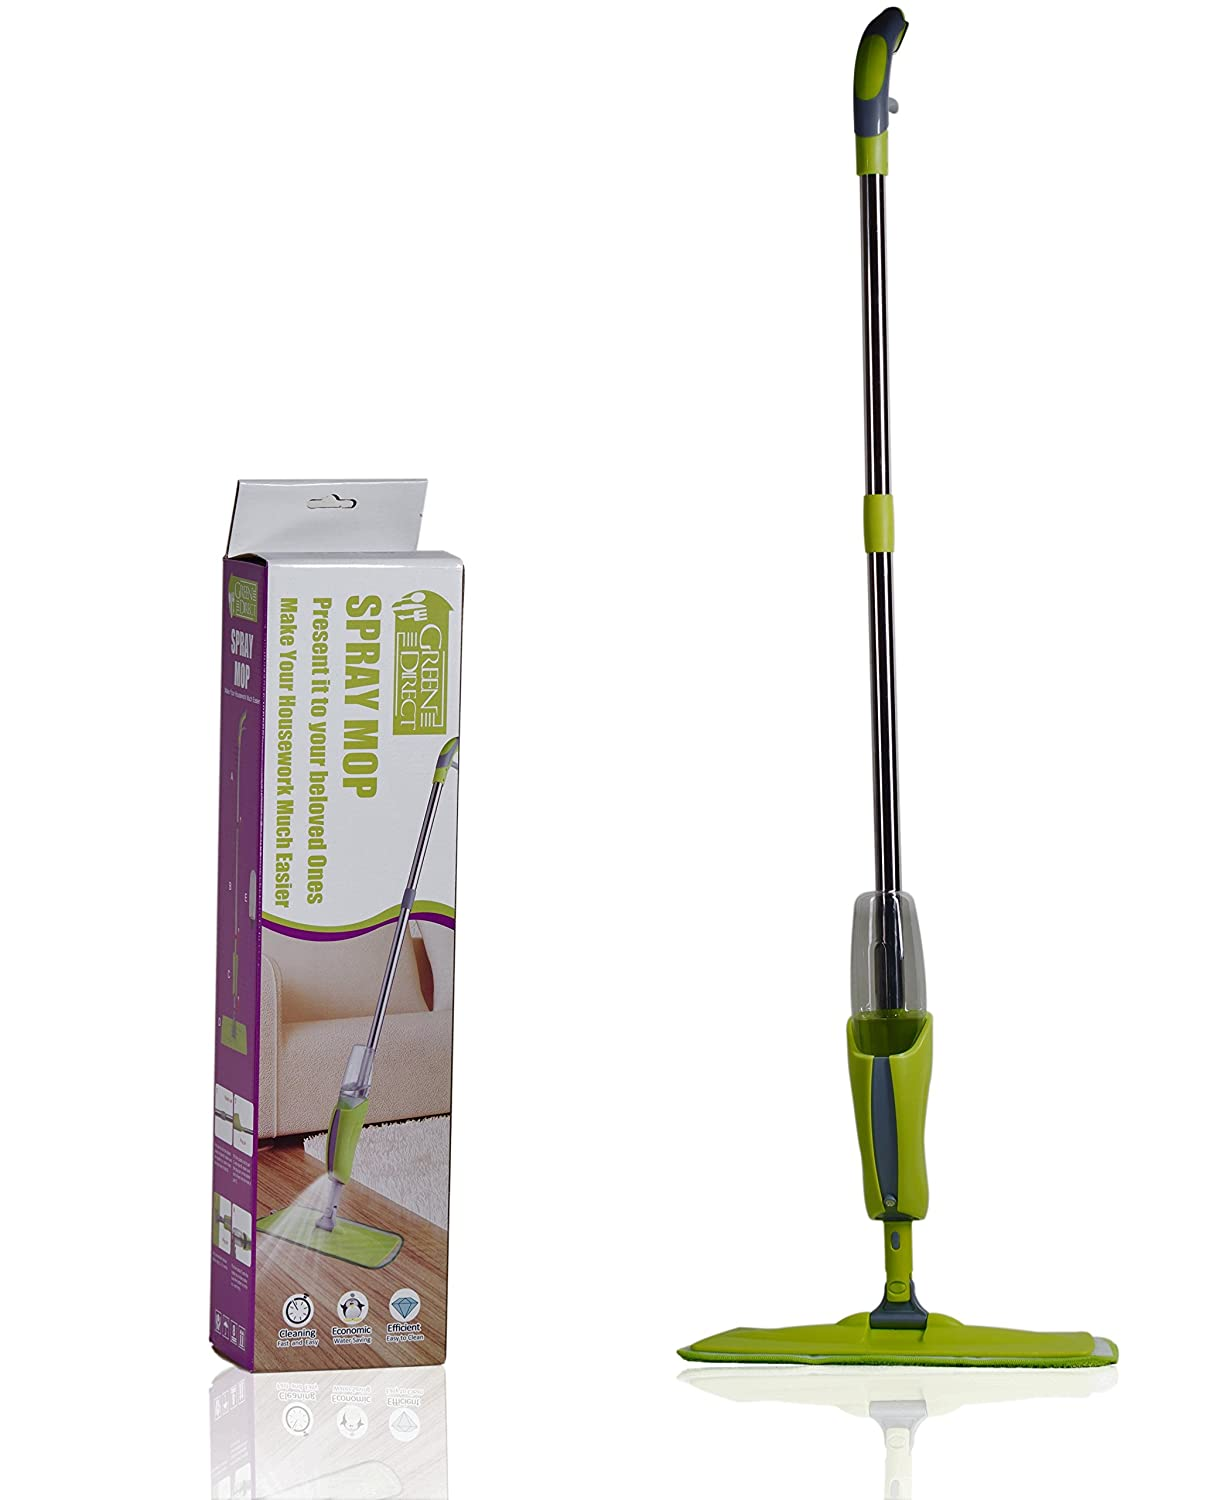 Amazon green direct hardwood floor mops for floor cleaning amazon green direct hardwood floor mops for floor cleaning laminate floor cleaner spray mop kits home kitchen dailygadgetfo Choice Image